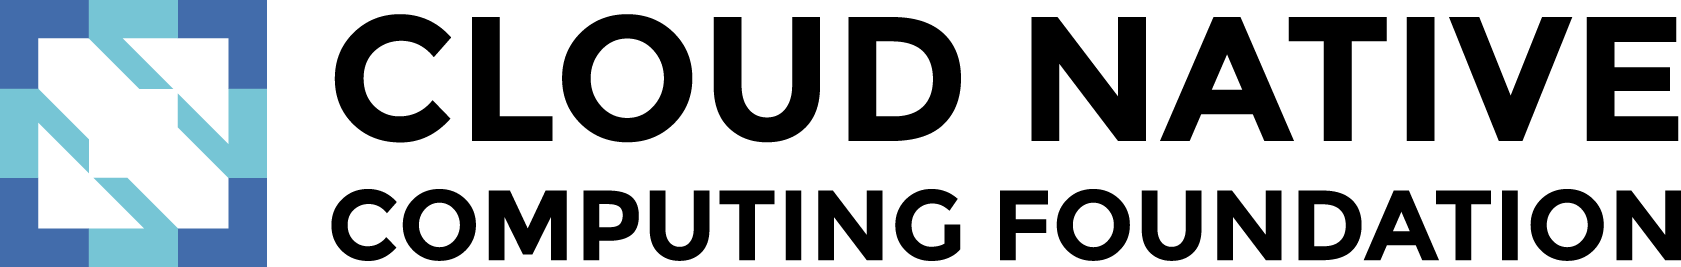 We are a Cloud Native Computing Foundation project